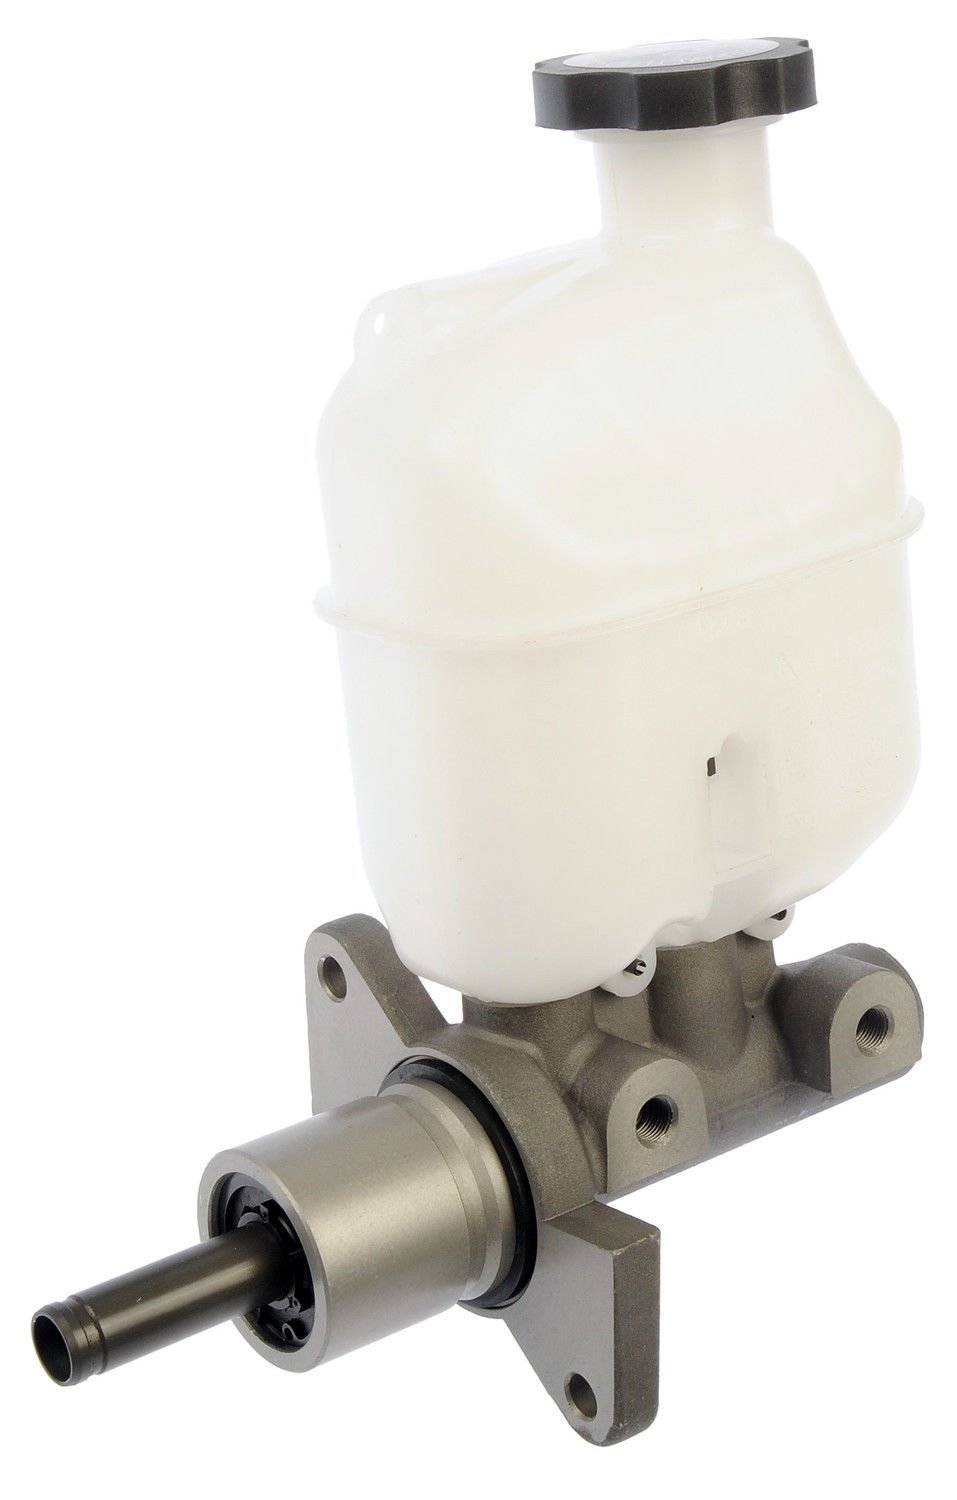 Brake master cylinder for GMC 2005 Pontiac G6 SE1 with 4cyl (non GT); 2006-2007 Pontiac G6 with 2.4L 4cyl or 3.5L and 3.9L V6 SE1 and SE2 (non GT); 2004-2007 Malibu All Exc. Maxx SS or SS; 2008 OLD BO NAMCCO